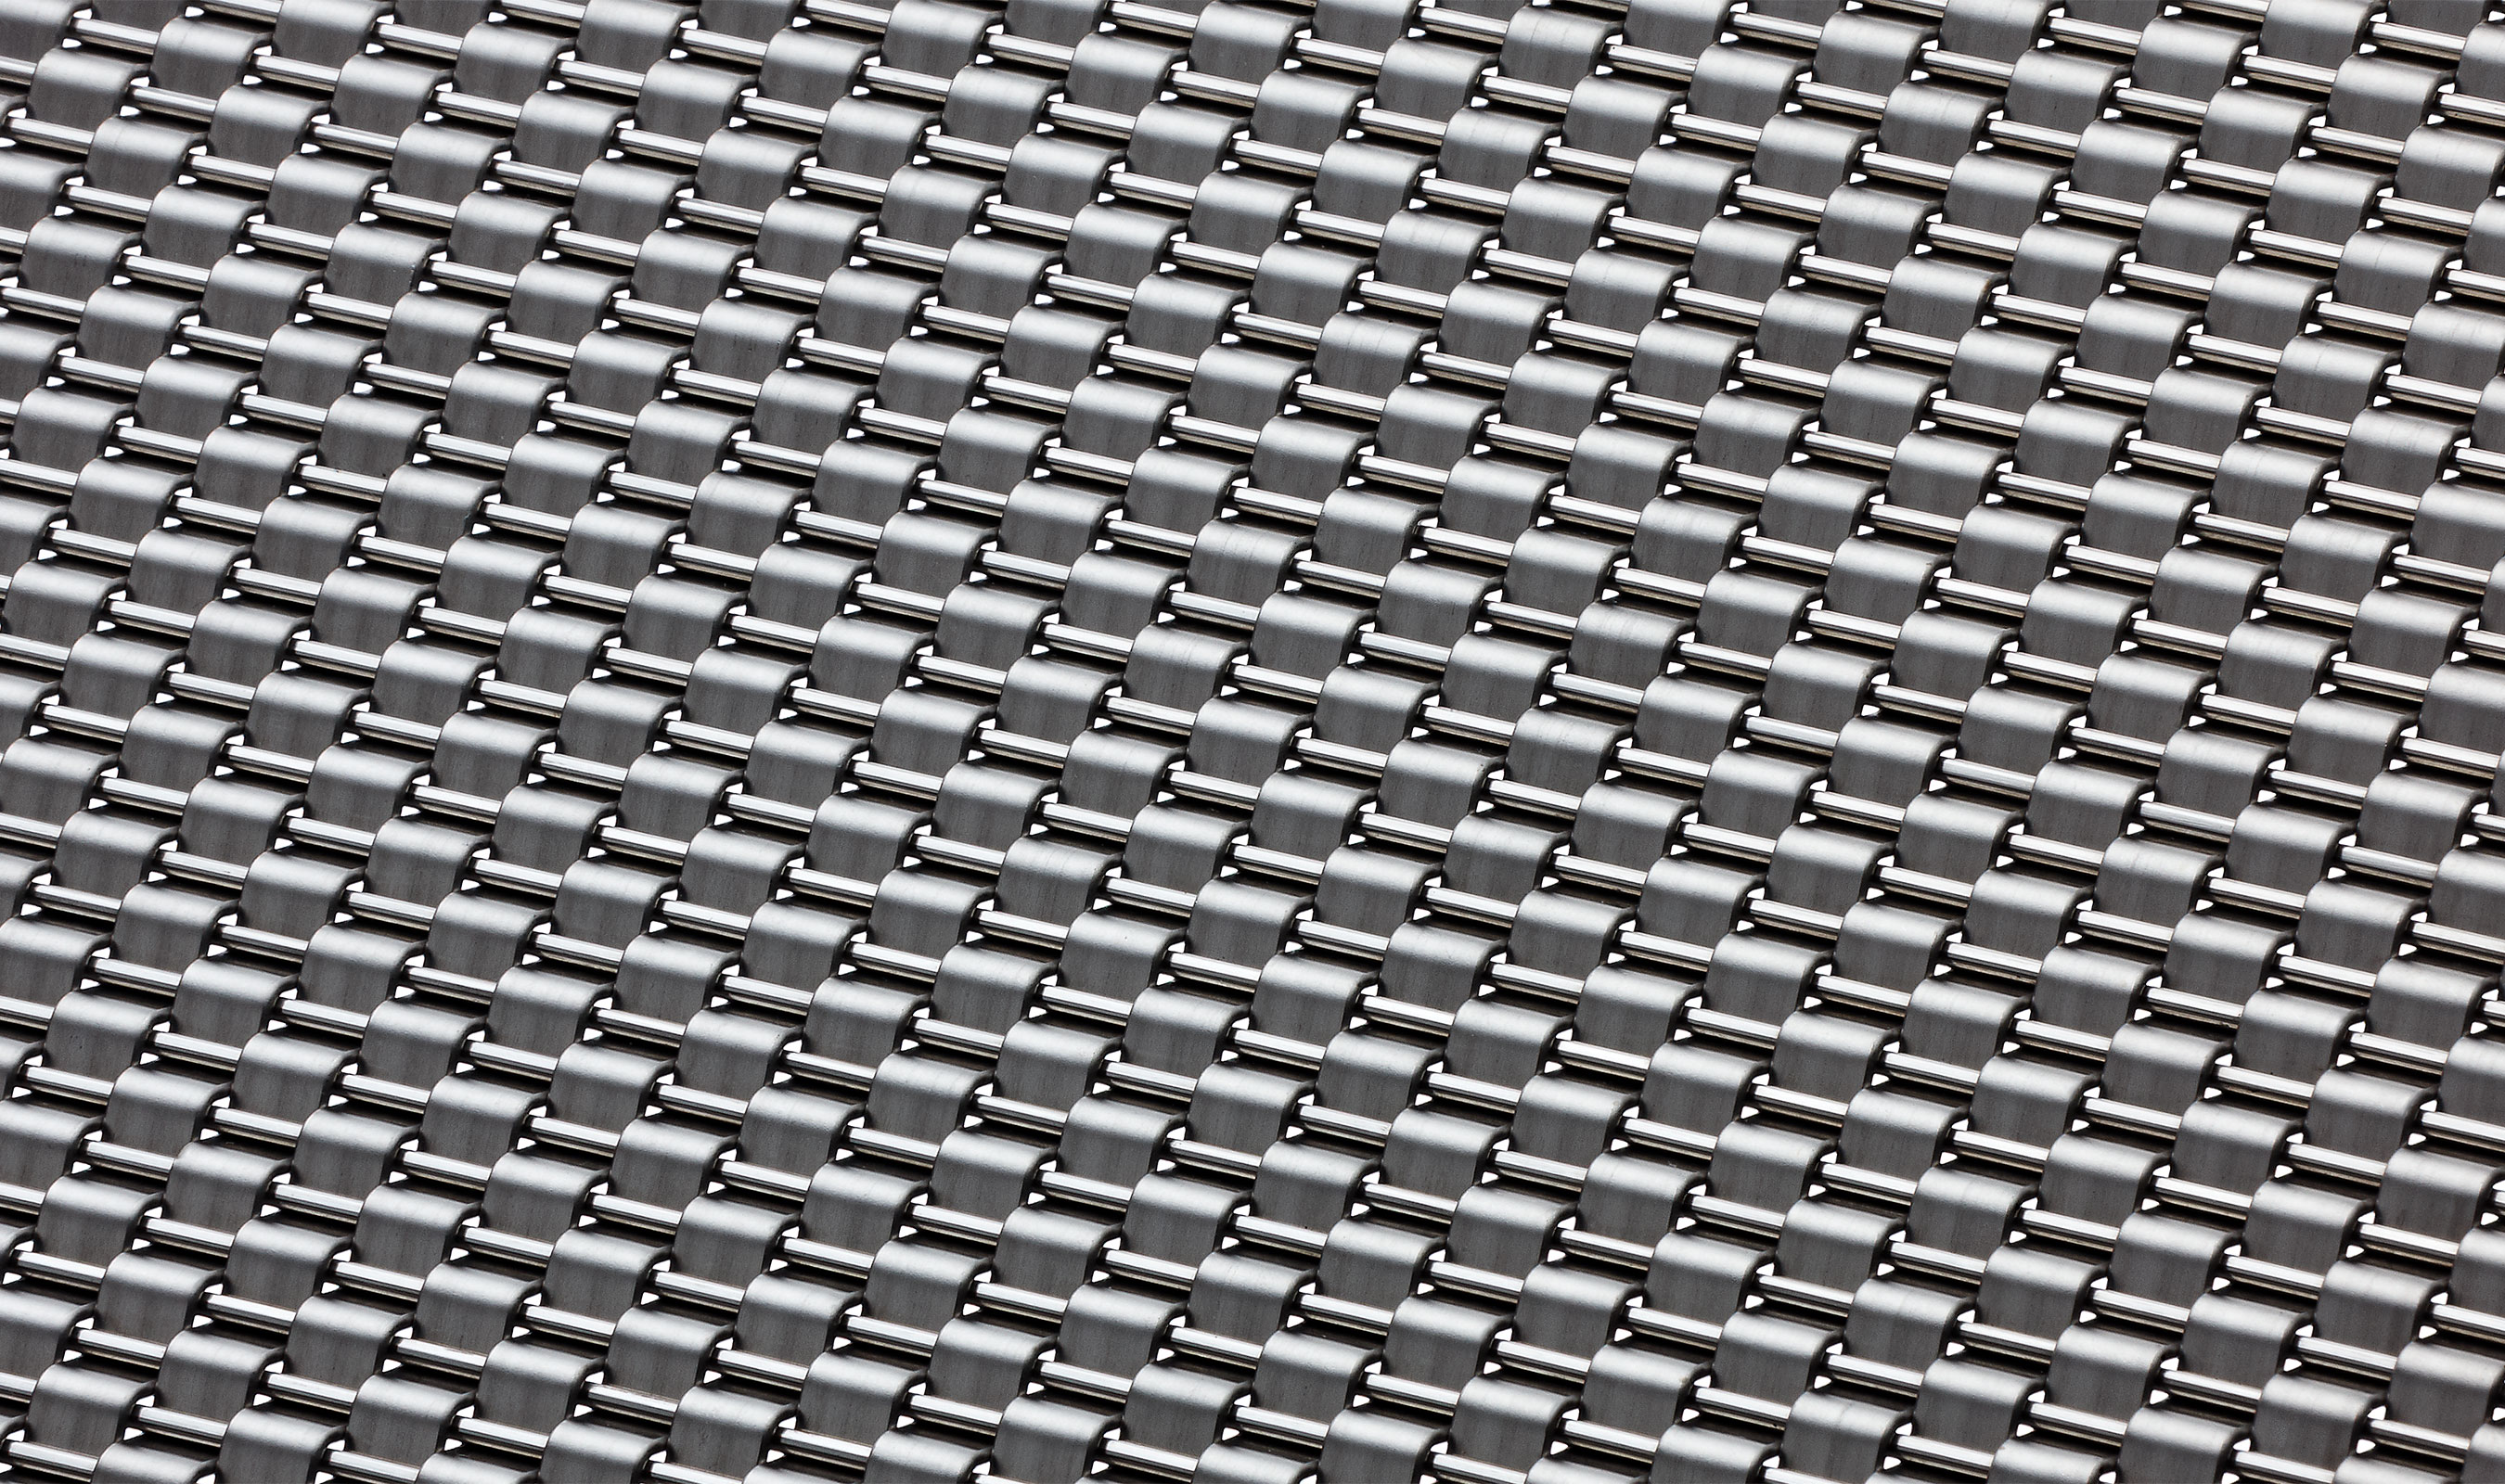 DS-1 Angle in Stainless Woven Wire Mesh